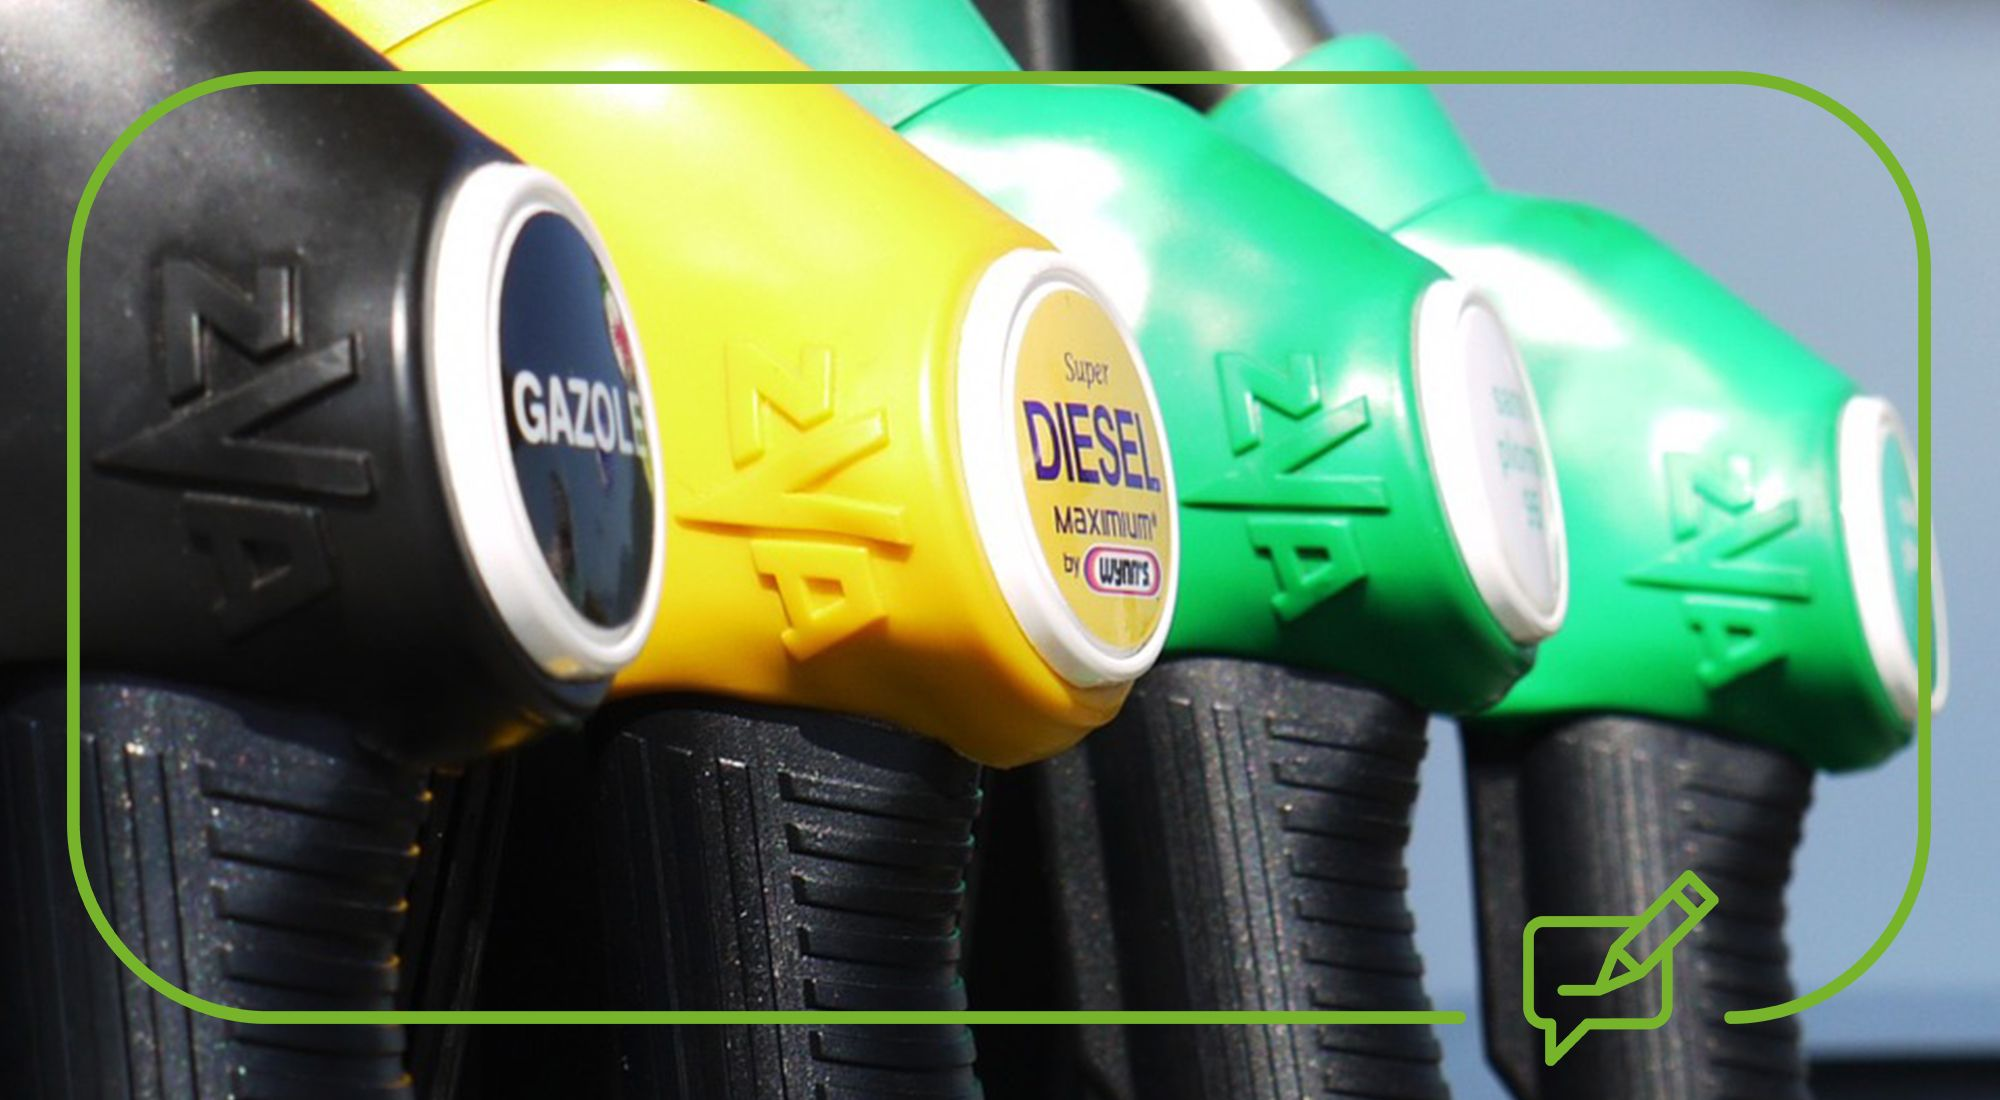 Save fuel with CarShop's top driving tips